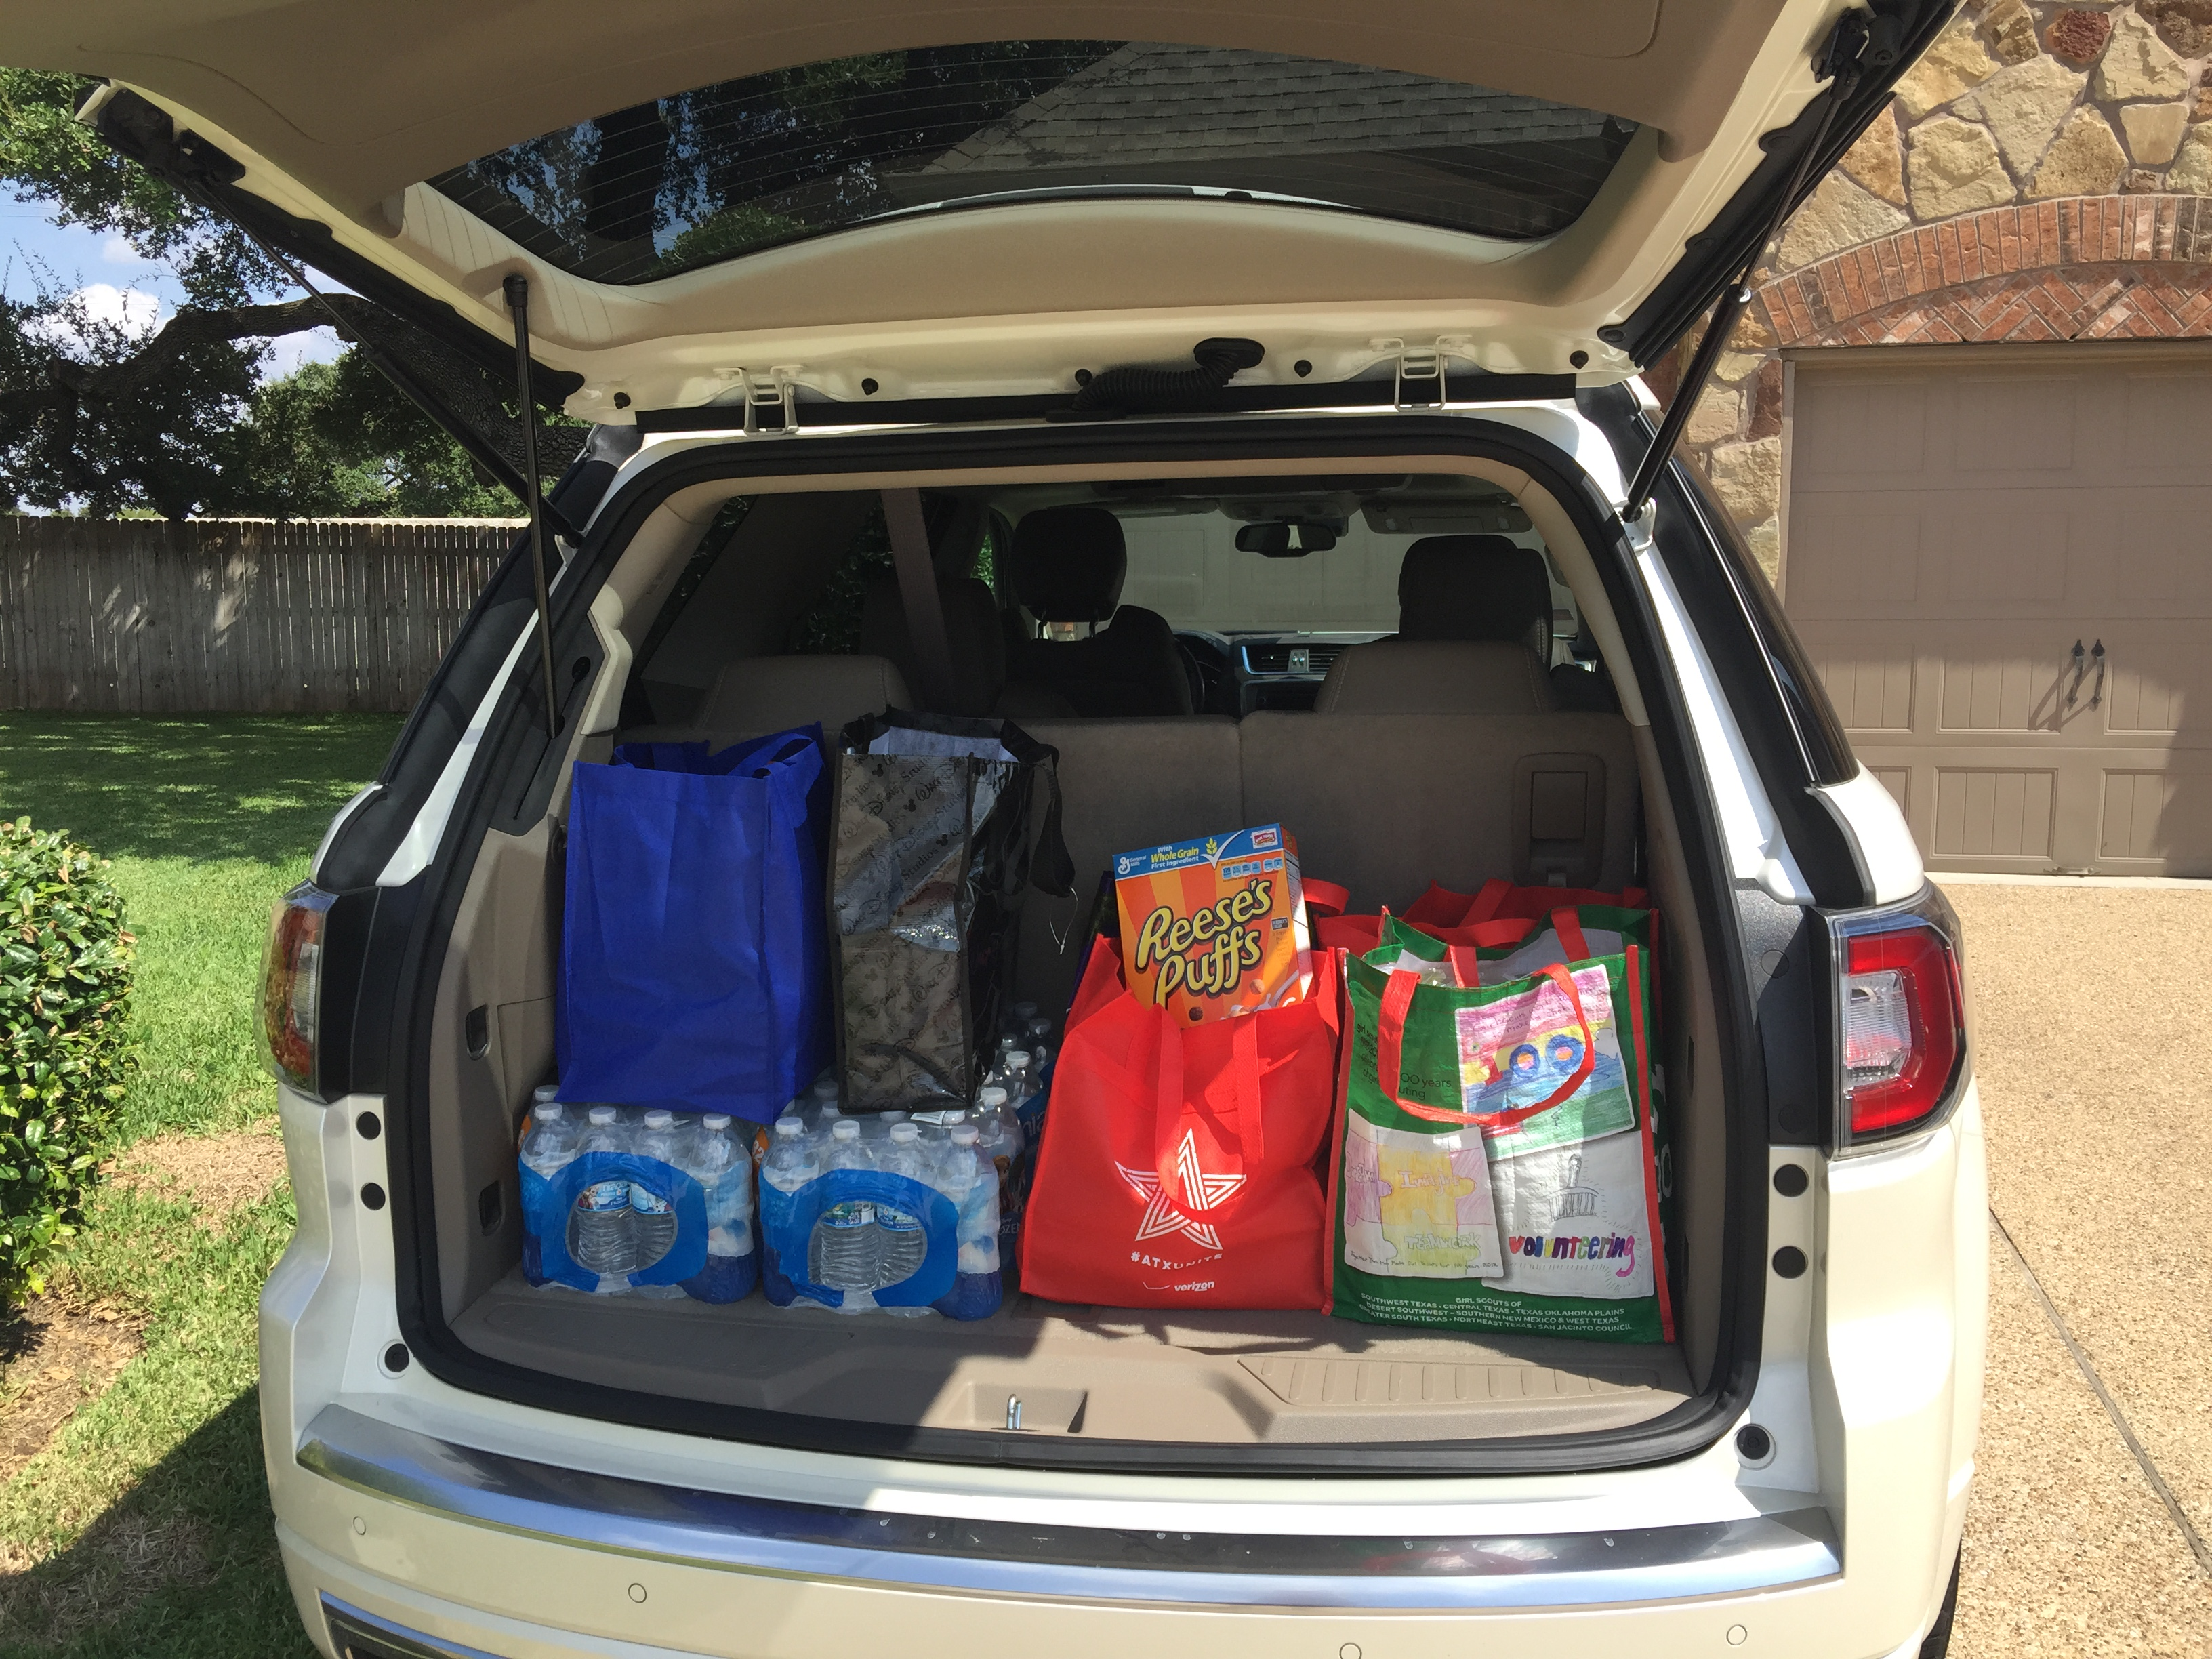 2015 Gmc Acadia Denali A Mom S Review For A Family Of 5